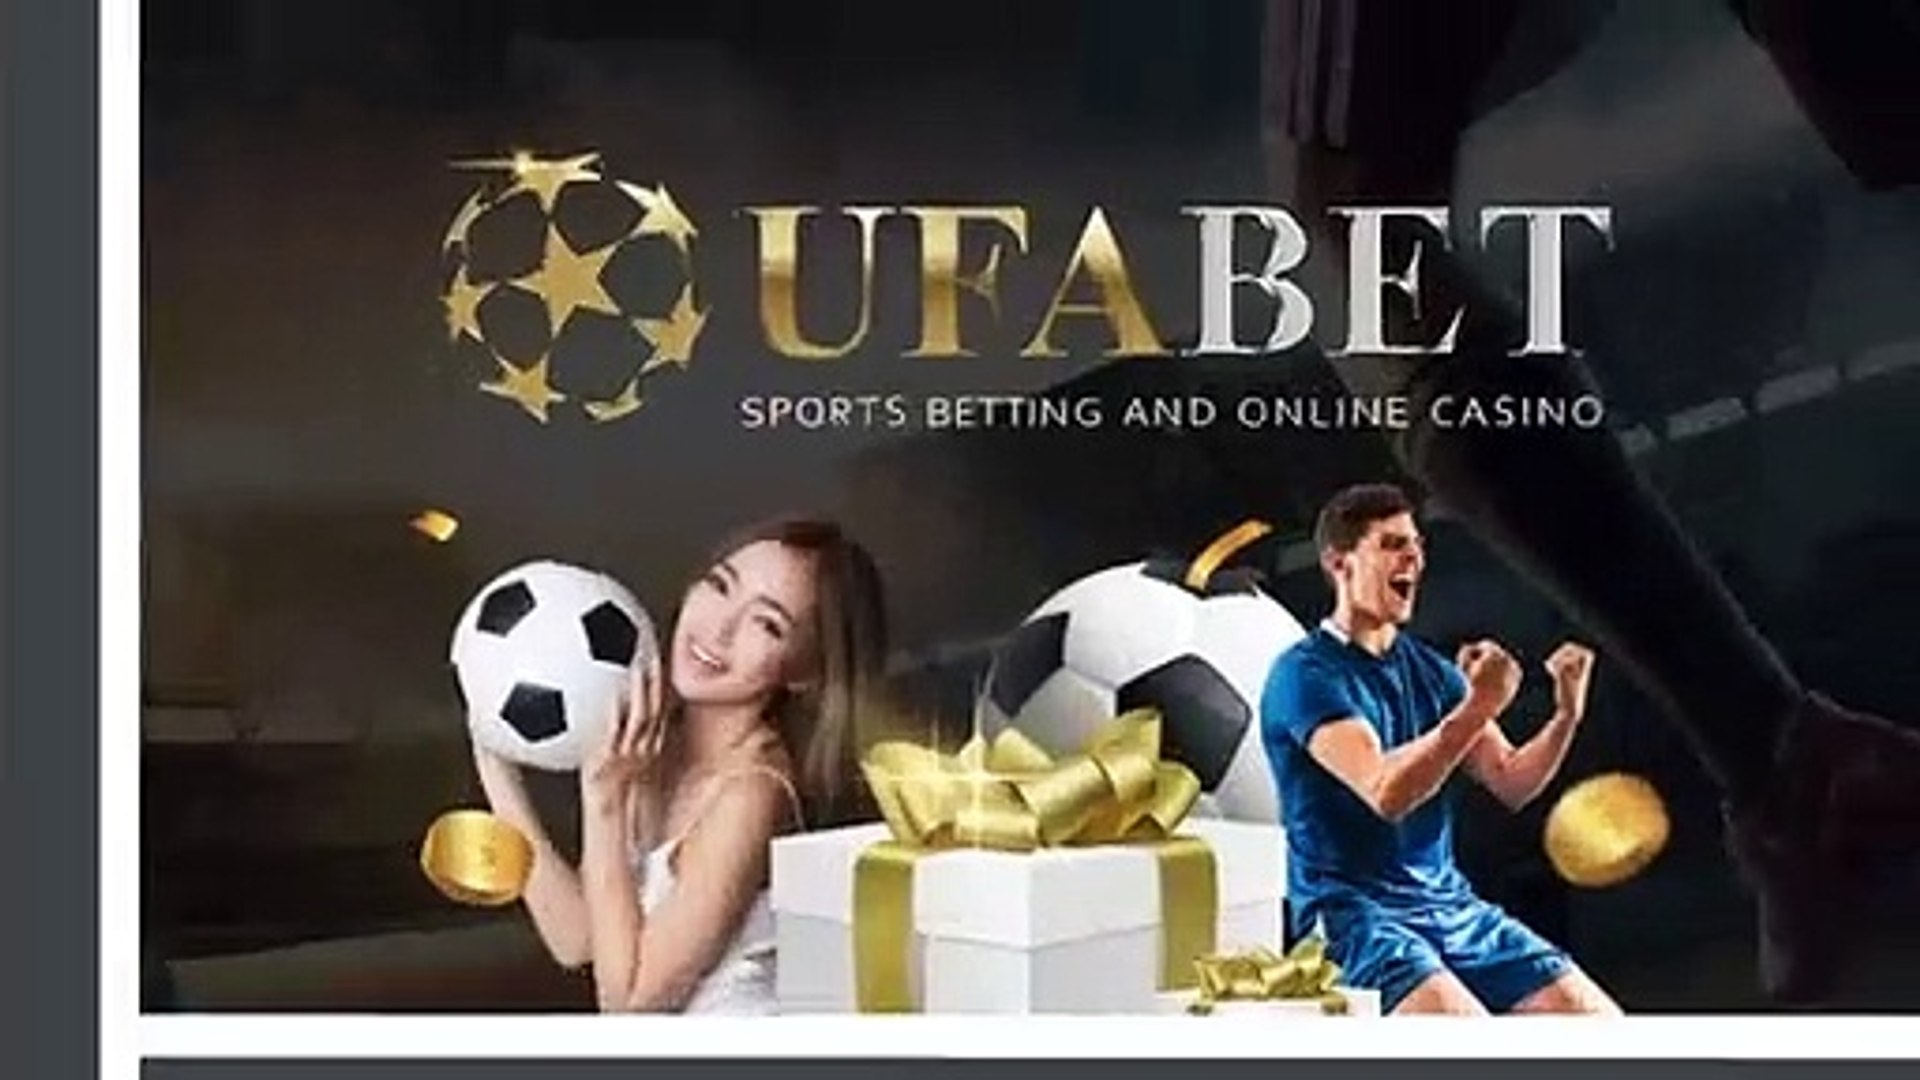 Why Should One Rely On The Huge Reward System Of Ufabet?